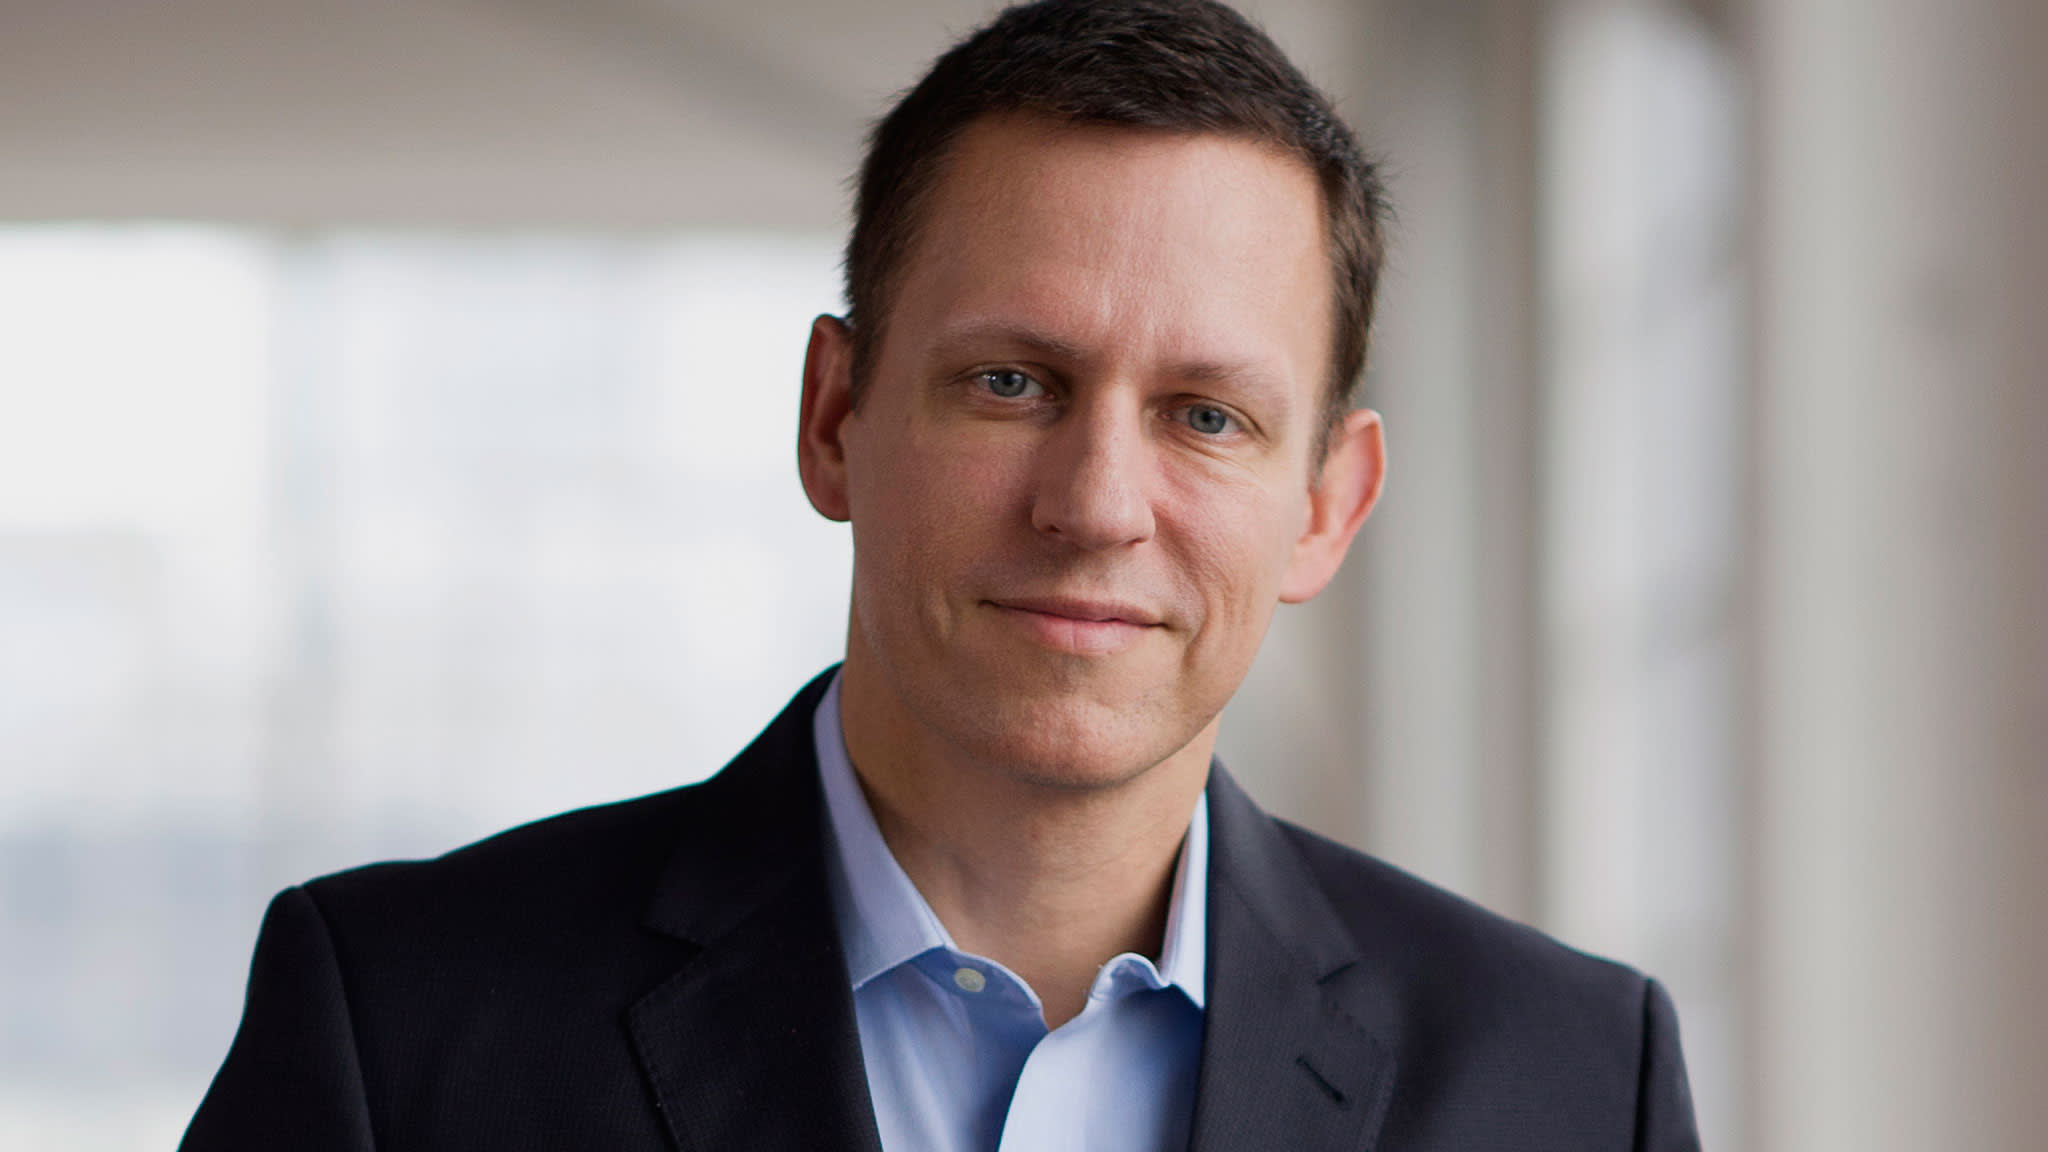 Peter Thiel changes course with funding of two Berlin start-ups | Financial Times